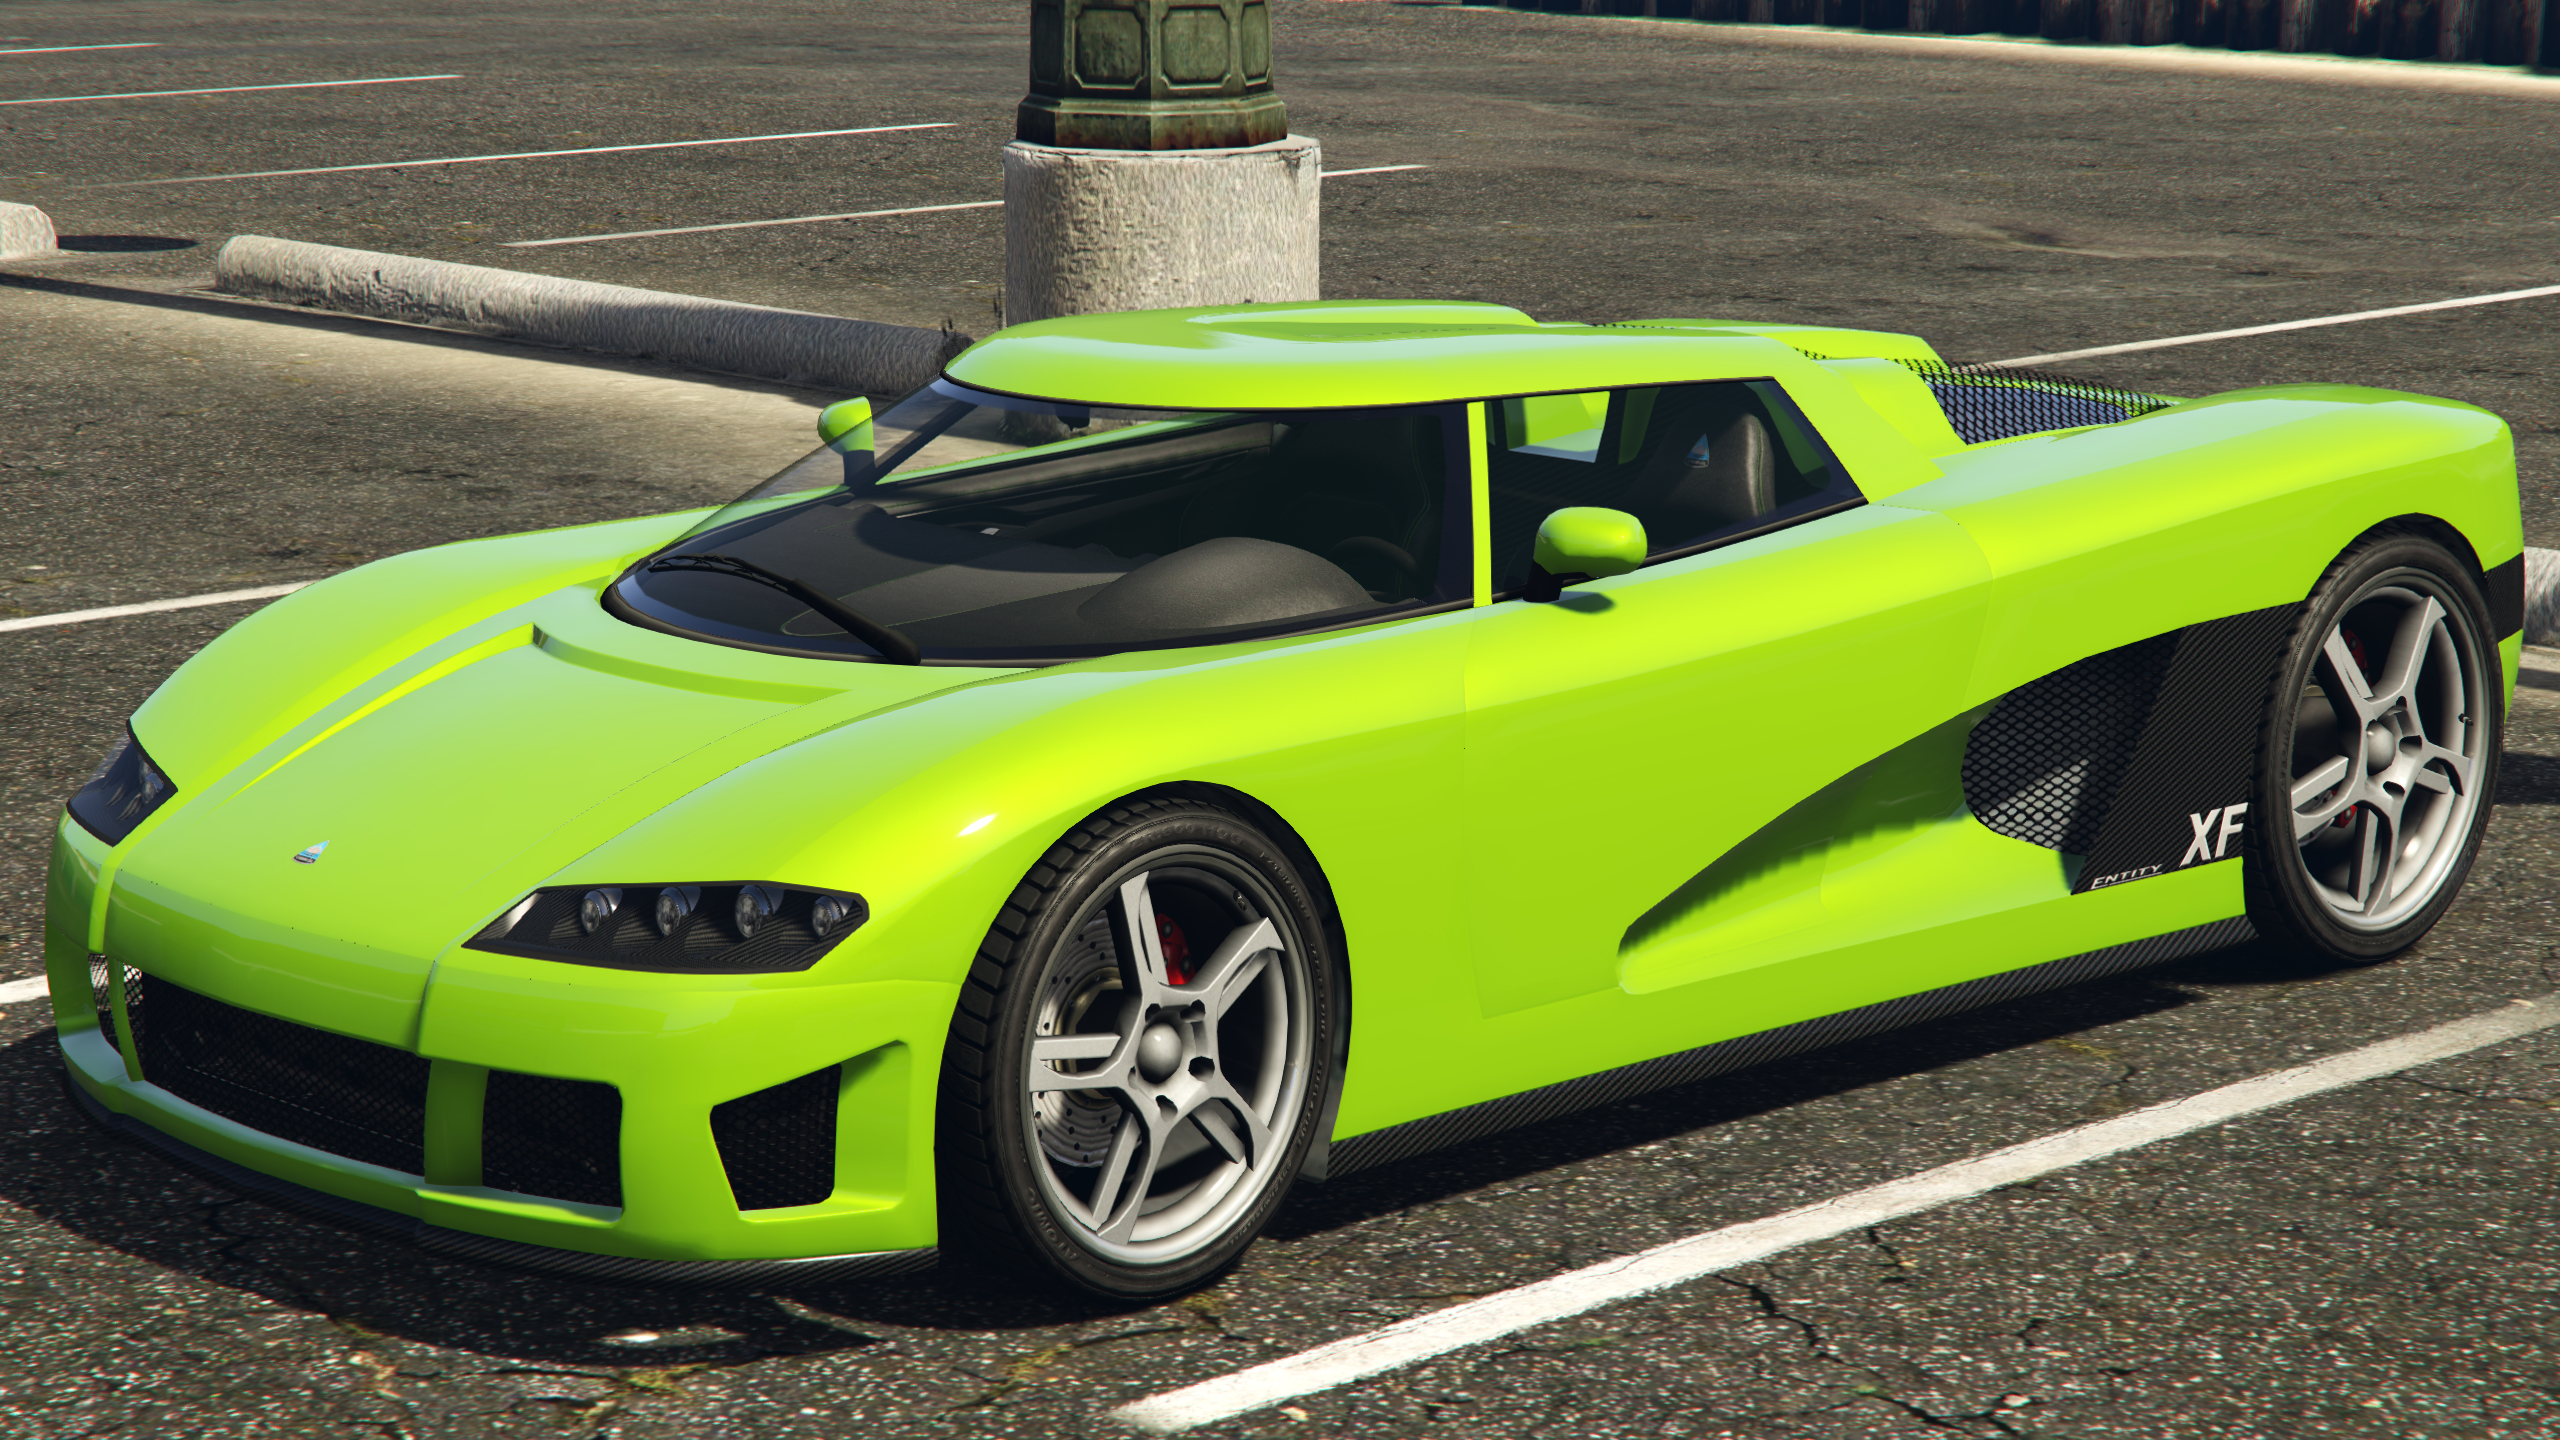 Gta Online Fastest Car To Buy